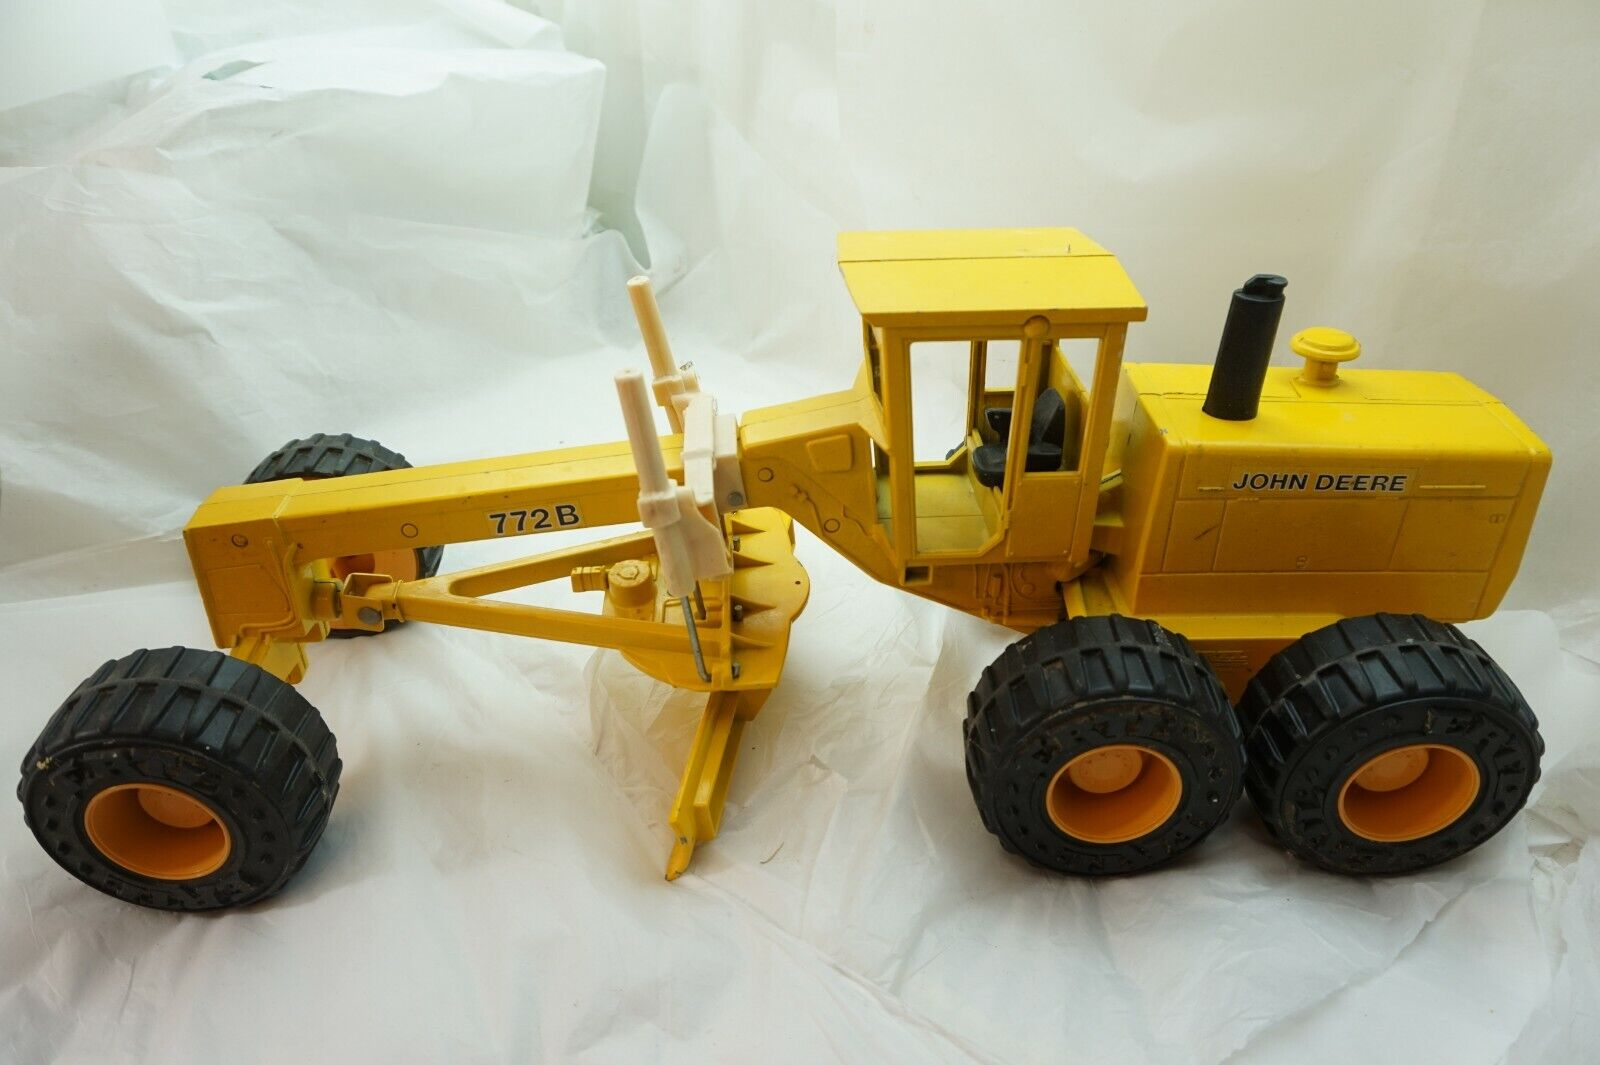 JOHN DEERE MOTOR ROAD GRADER ERTL 772B DIECAST METAL TOY 1 16 SCALE BIG 22in d